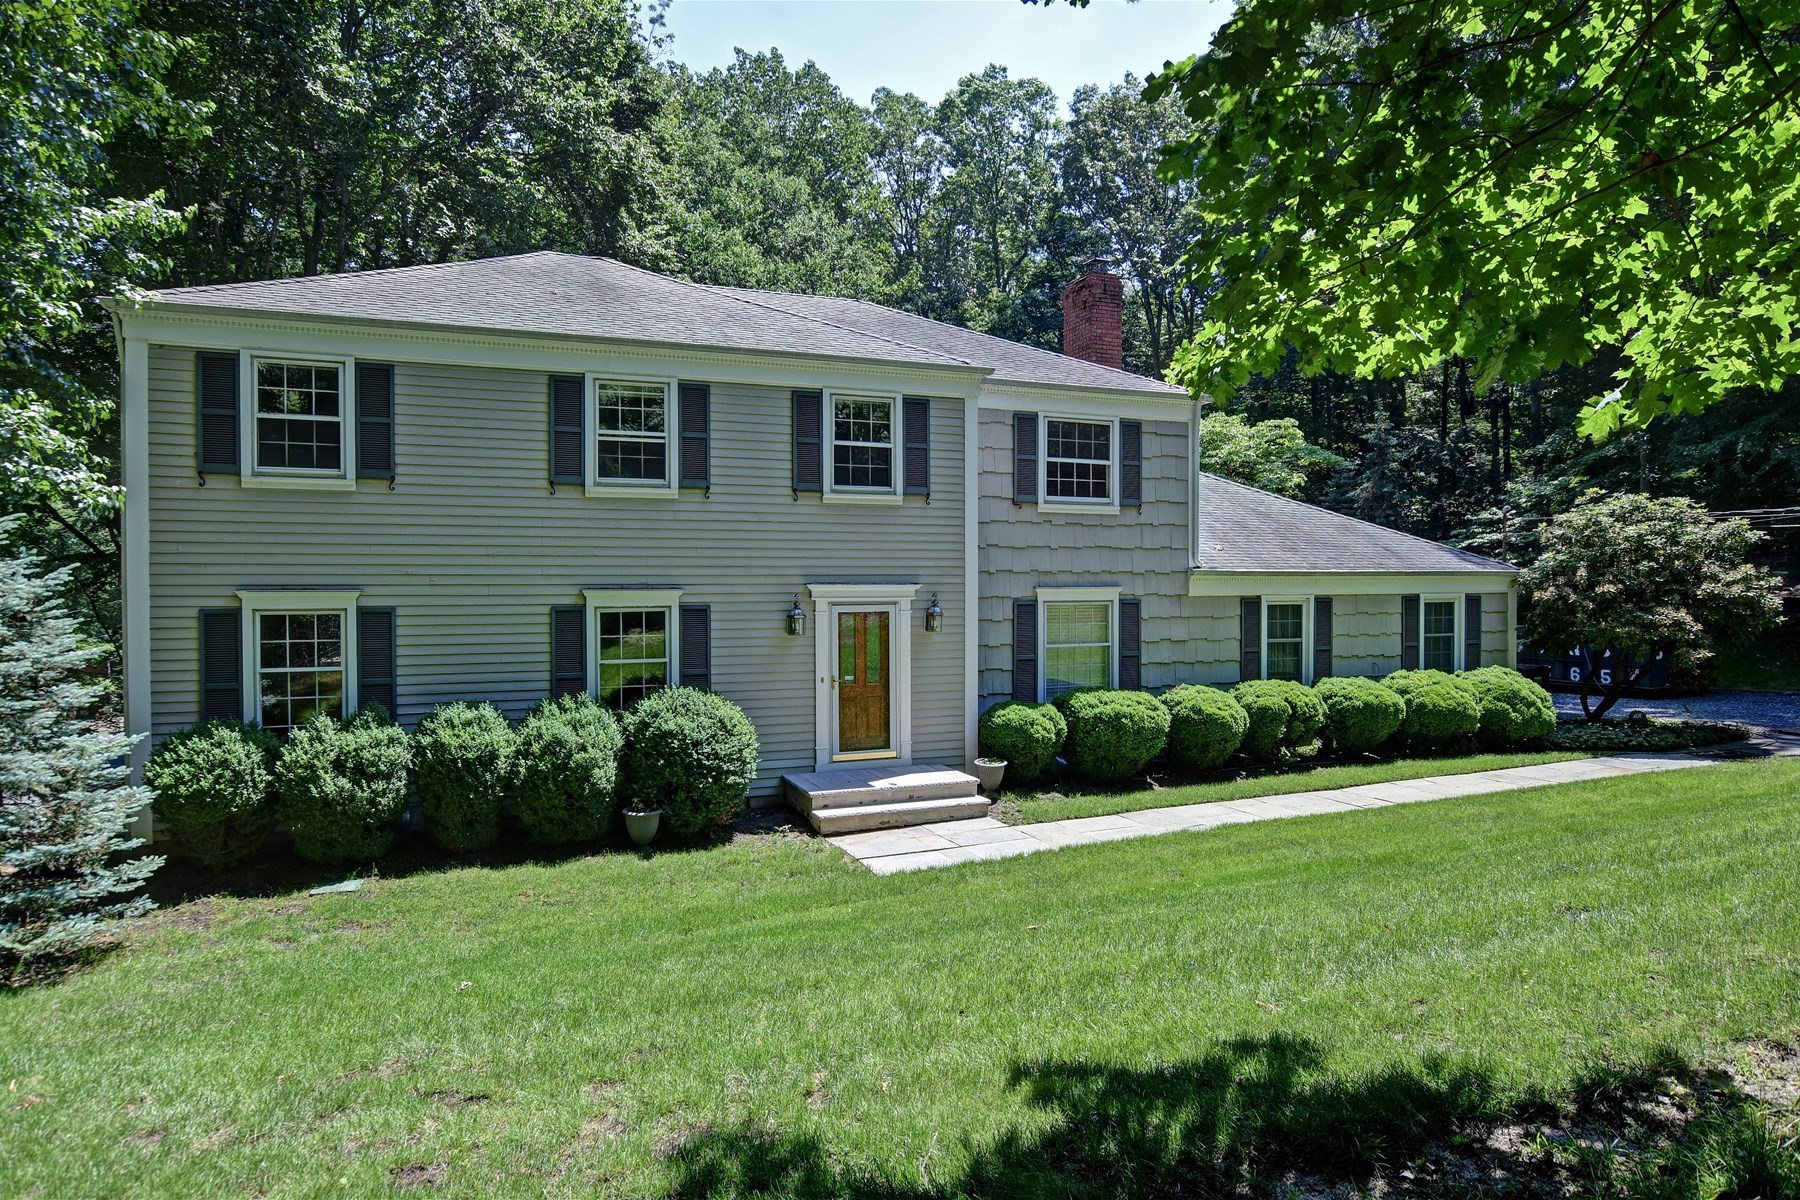 Single Family Home for Sale at Classic Colonial 12 Craig Court Colts Neck, New Jersey, 07722 United States